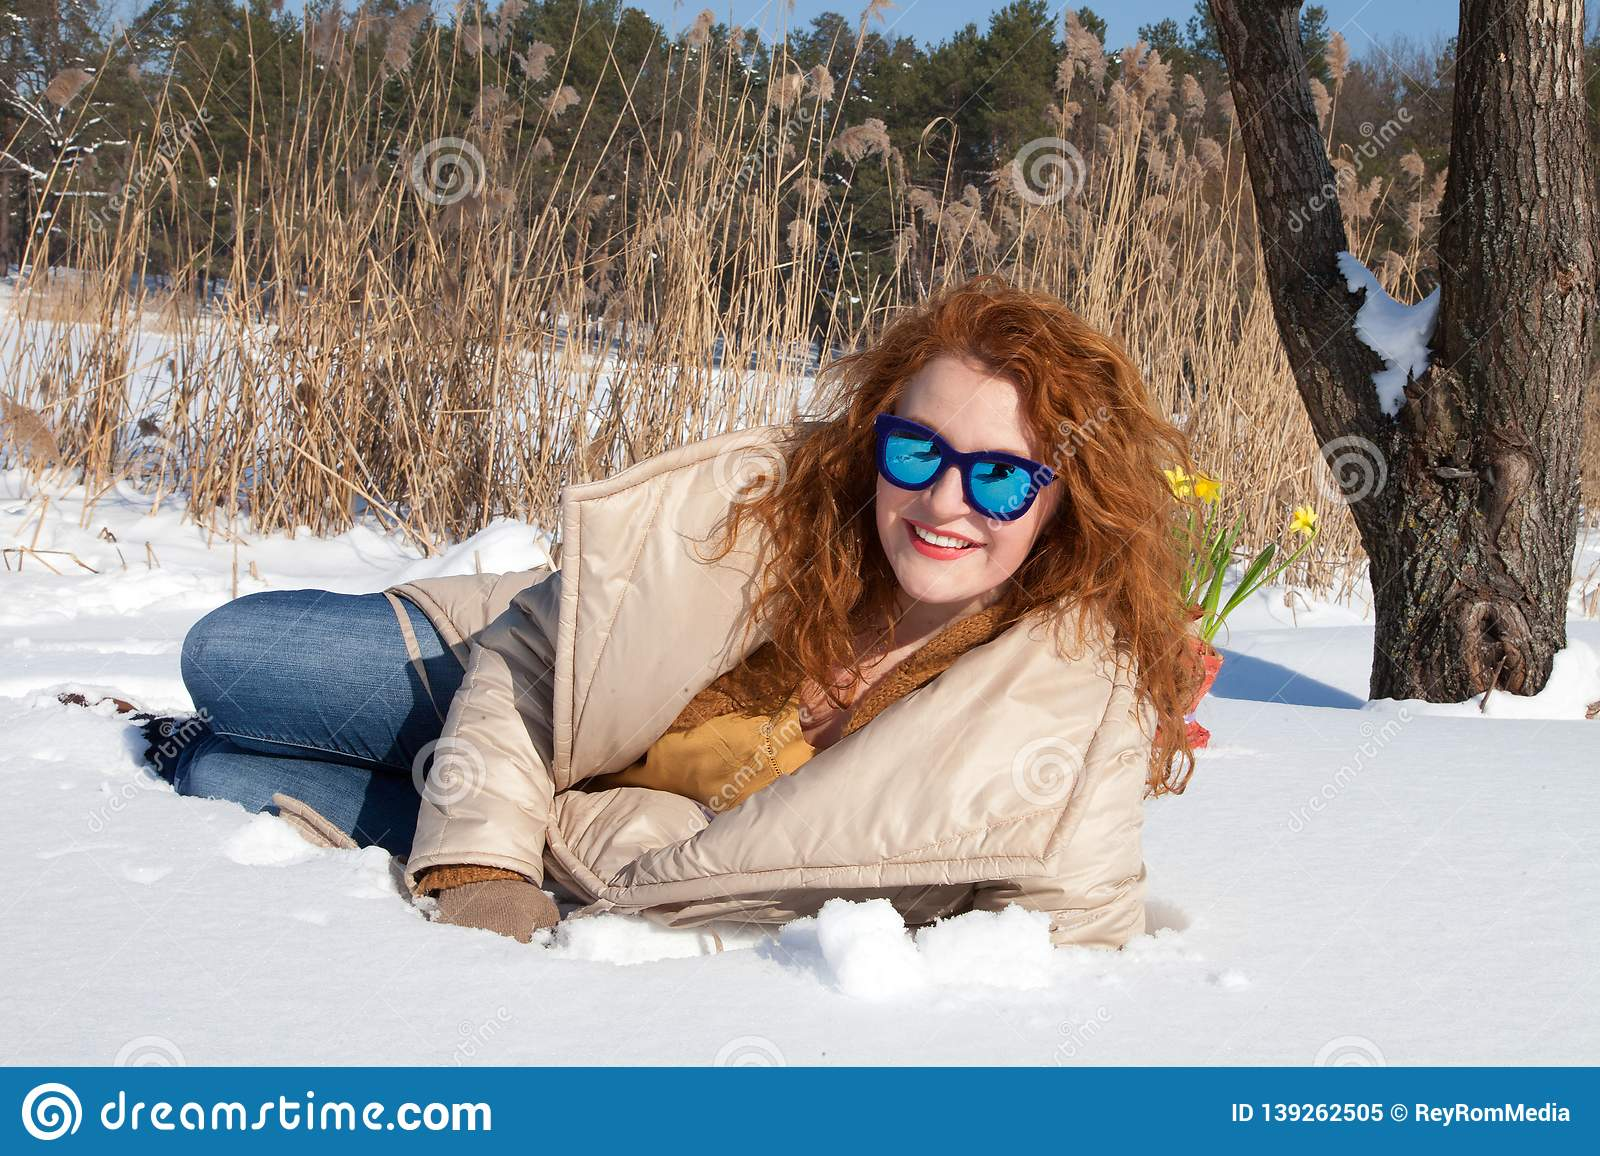 Cheerful fashionable woman resting in snow against rural environment